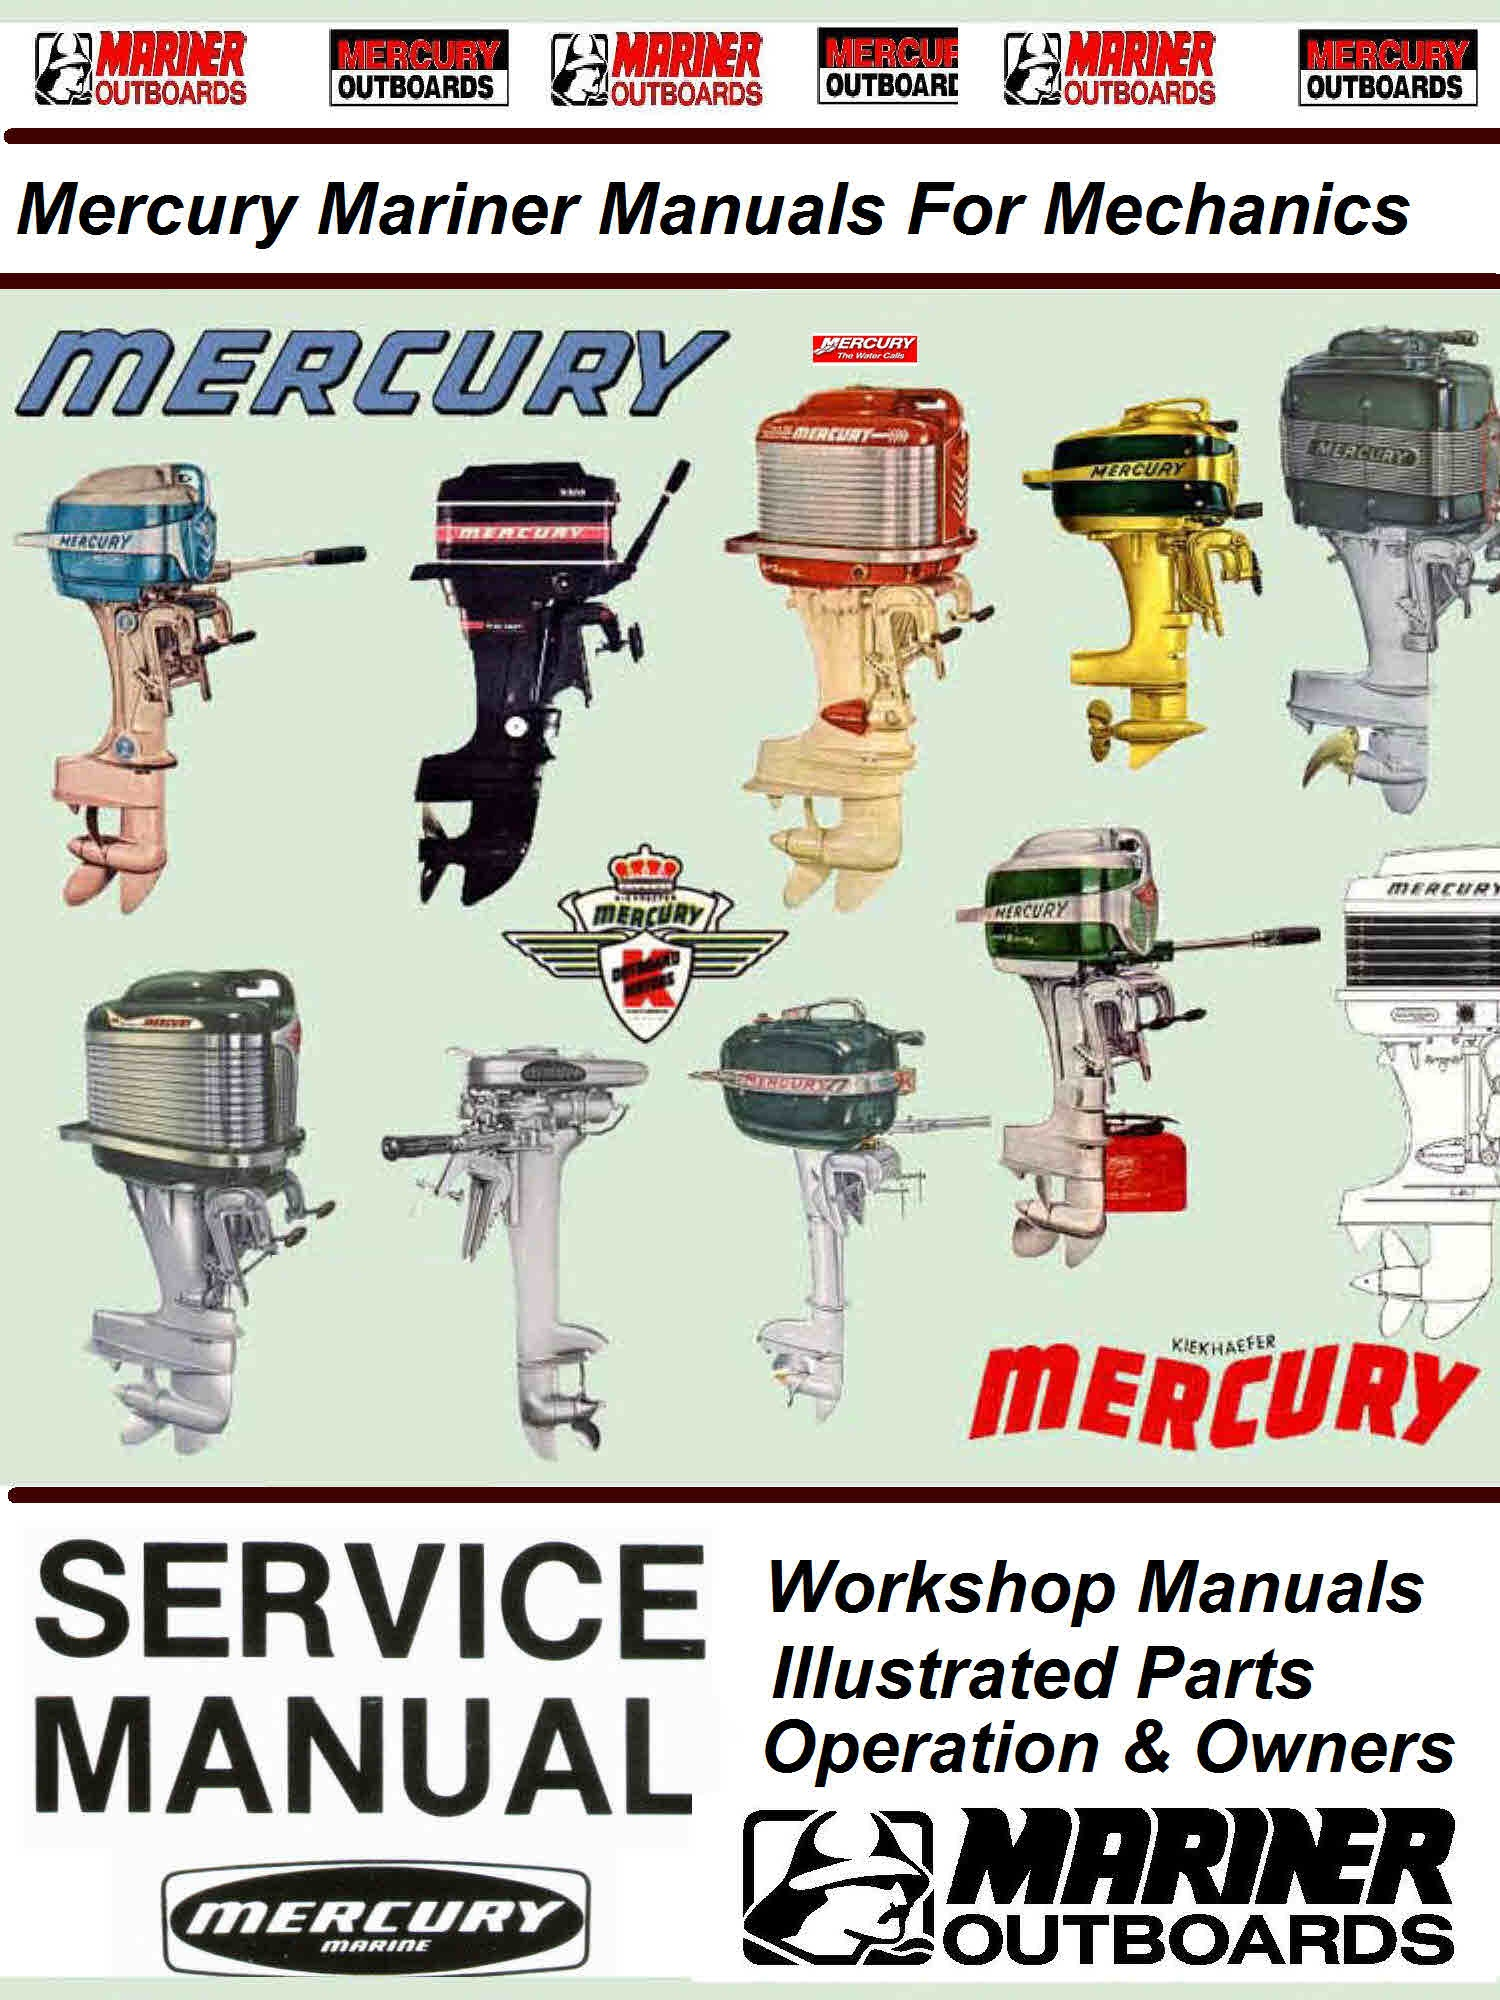 Mercury & Mariner Vintage Service Manuals for Mechanics